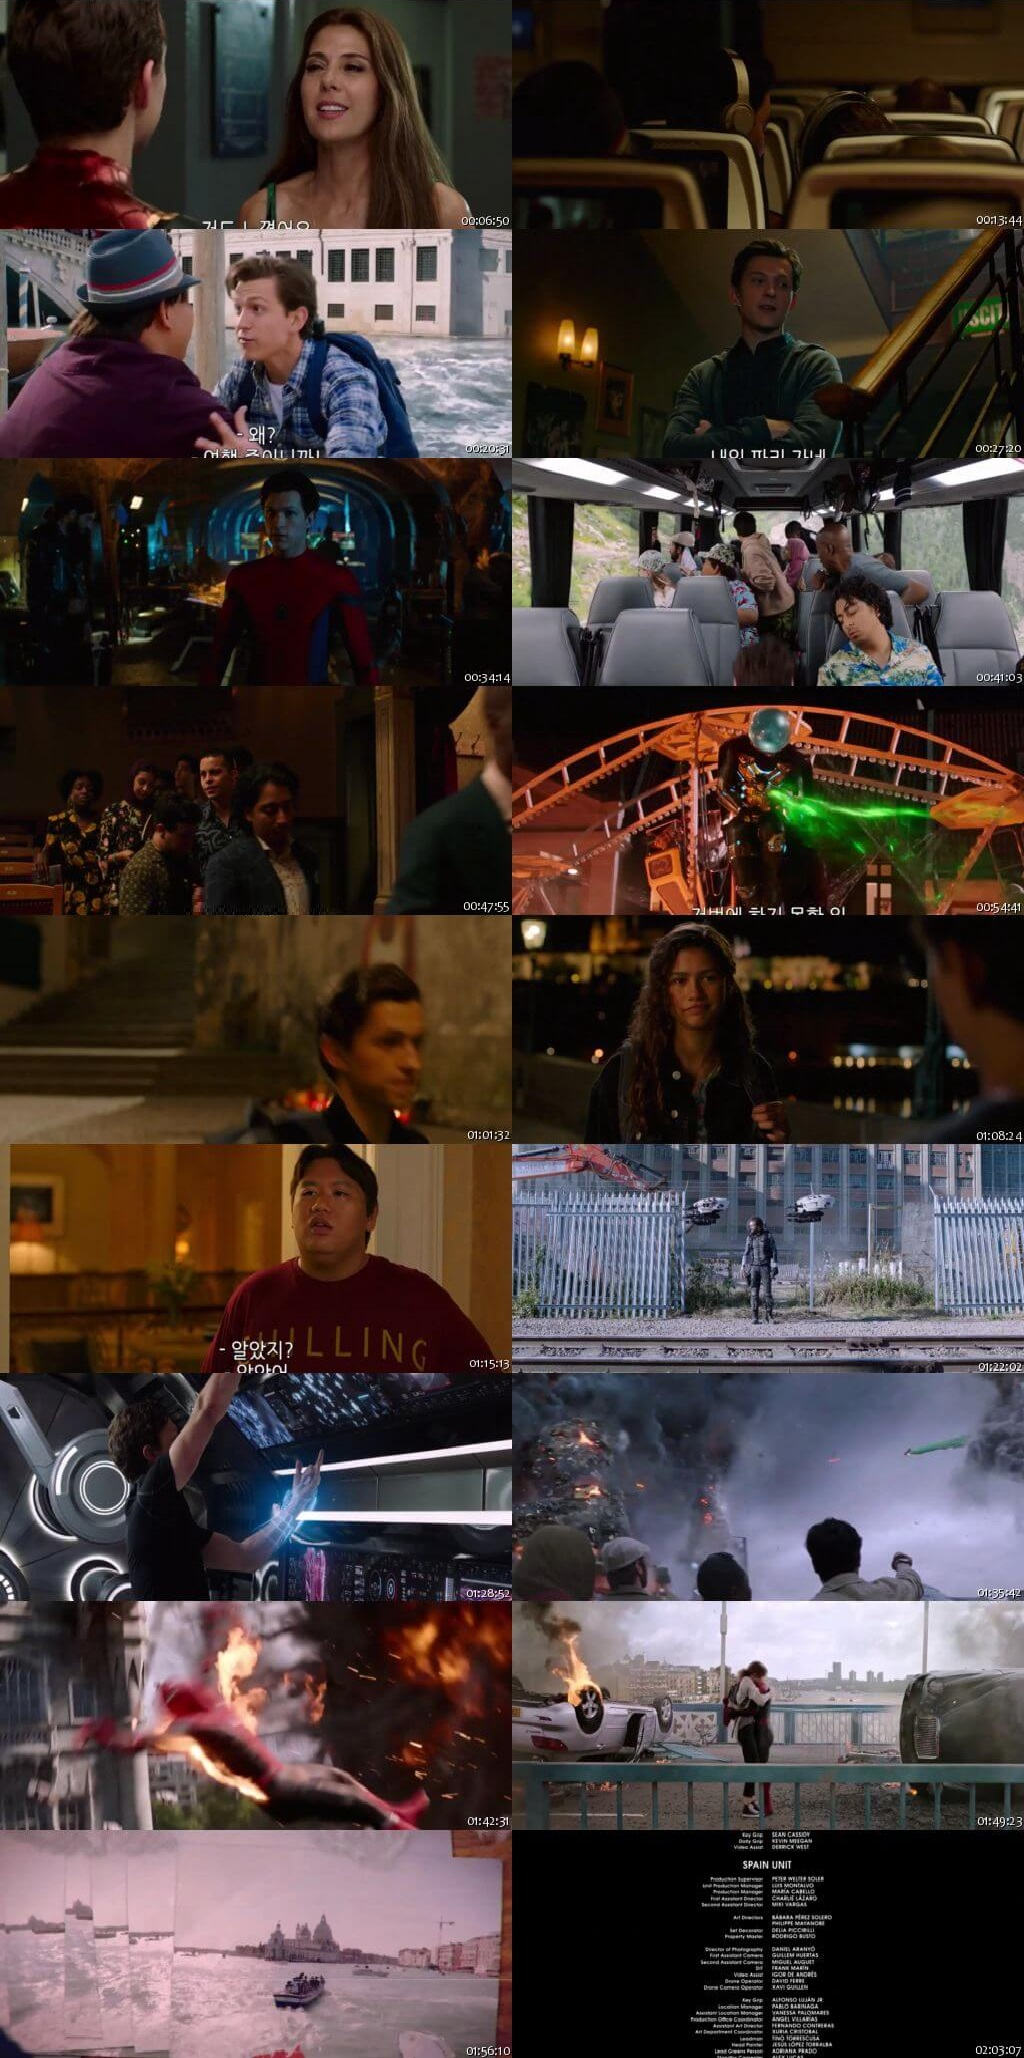 Far%2Bfrom%2BHome Far from Home 2019 300MB Hindi Dubbed 480P HQ